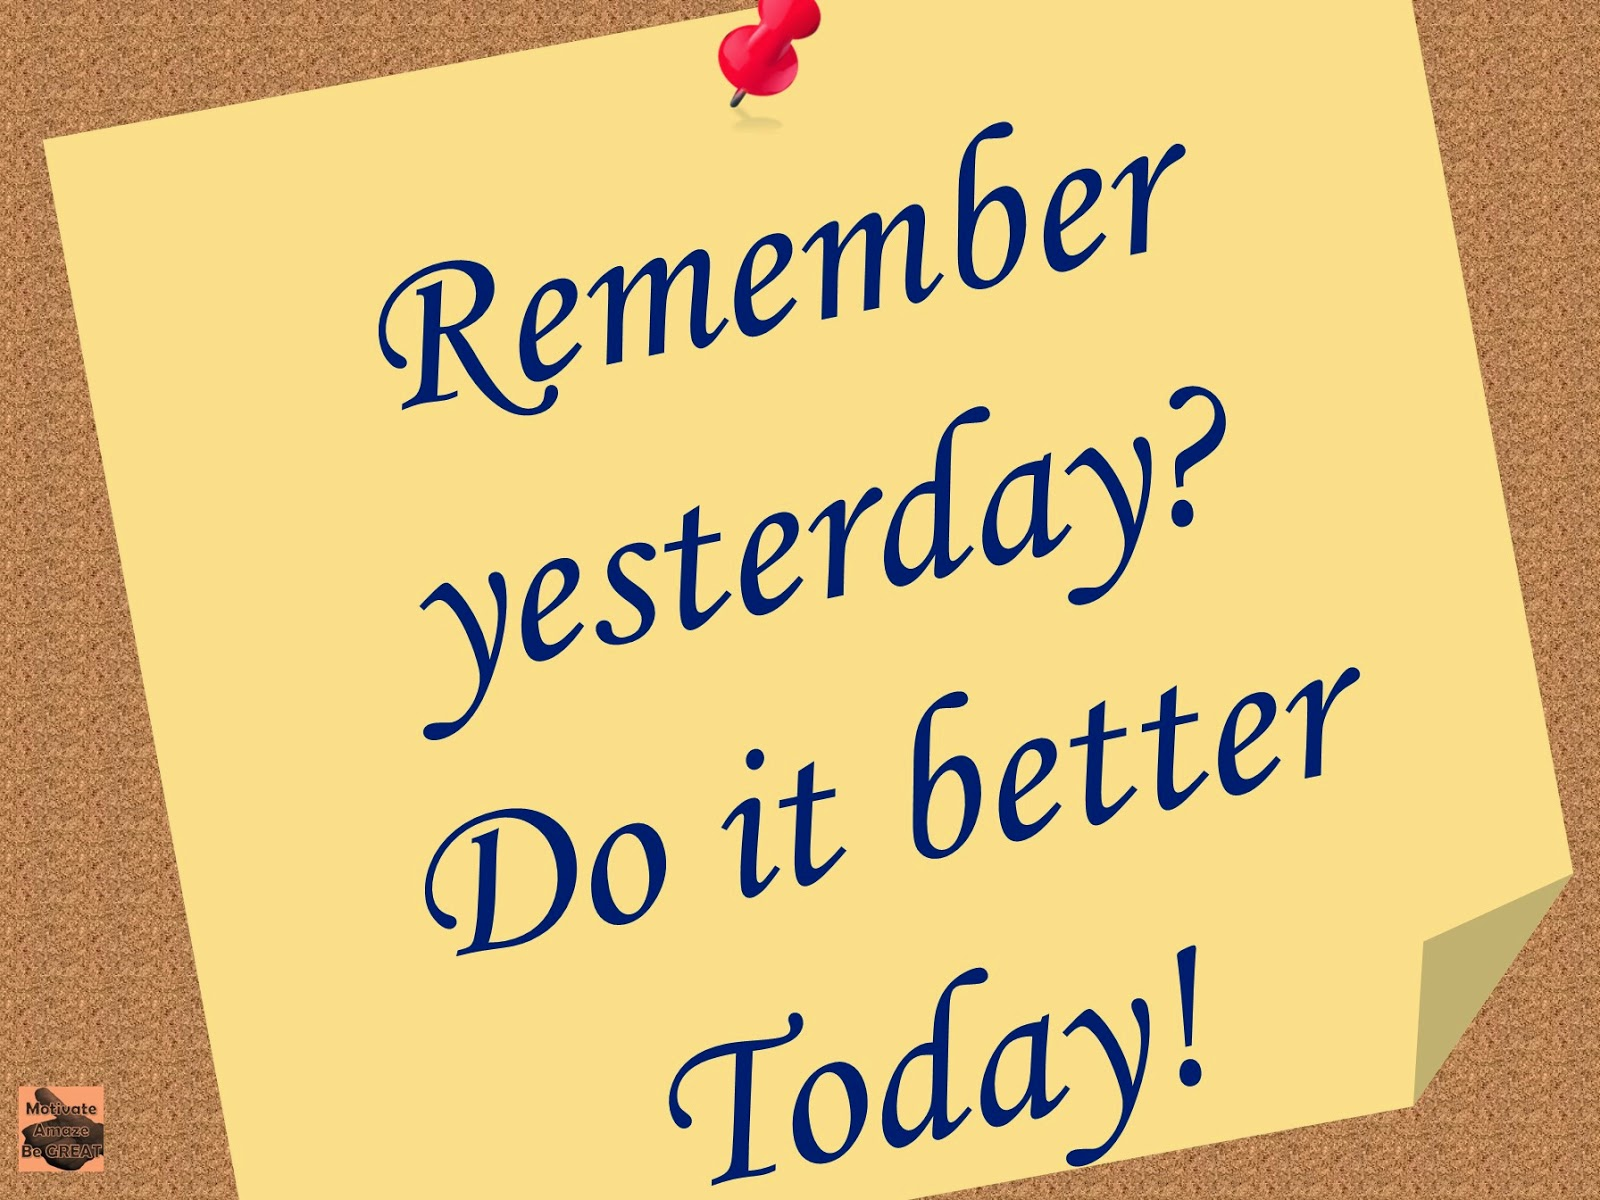 Yesterday, Today, Better, Motivational, Inspiration, daily, Picture, Quotes, Success, Motivation